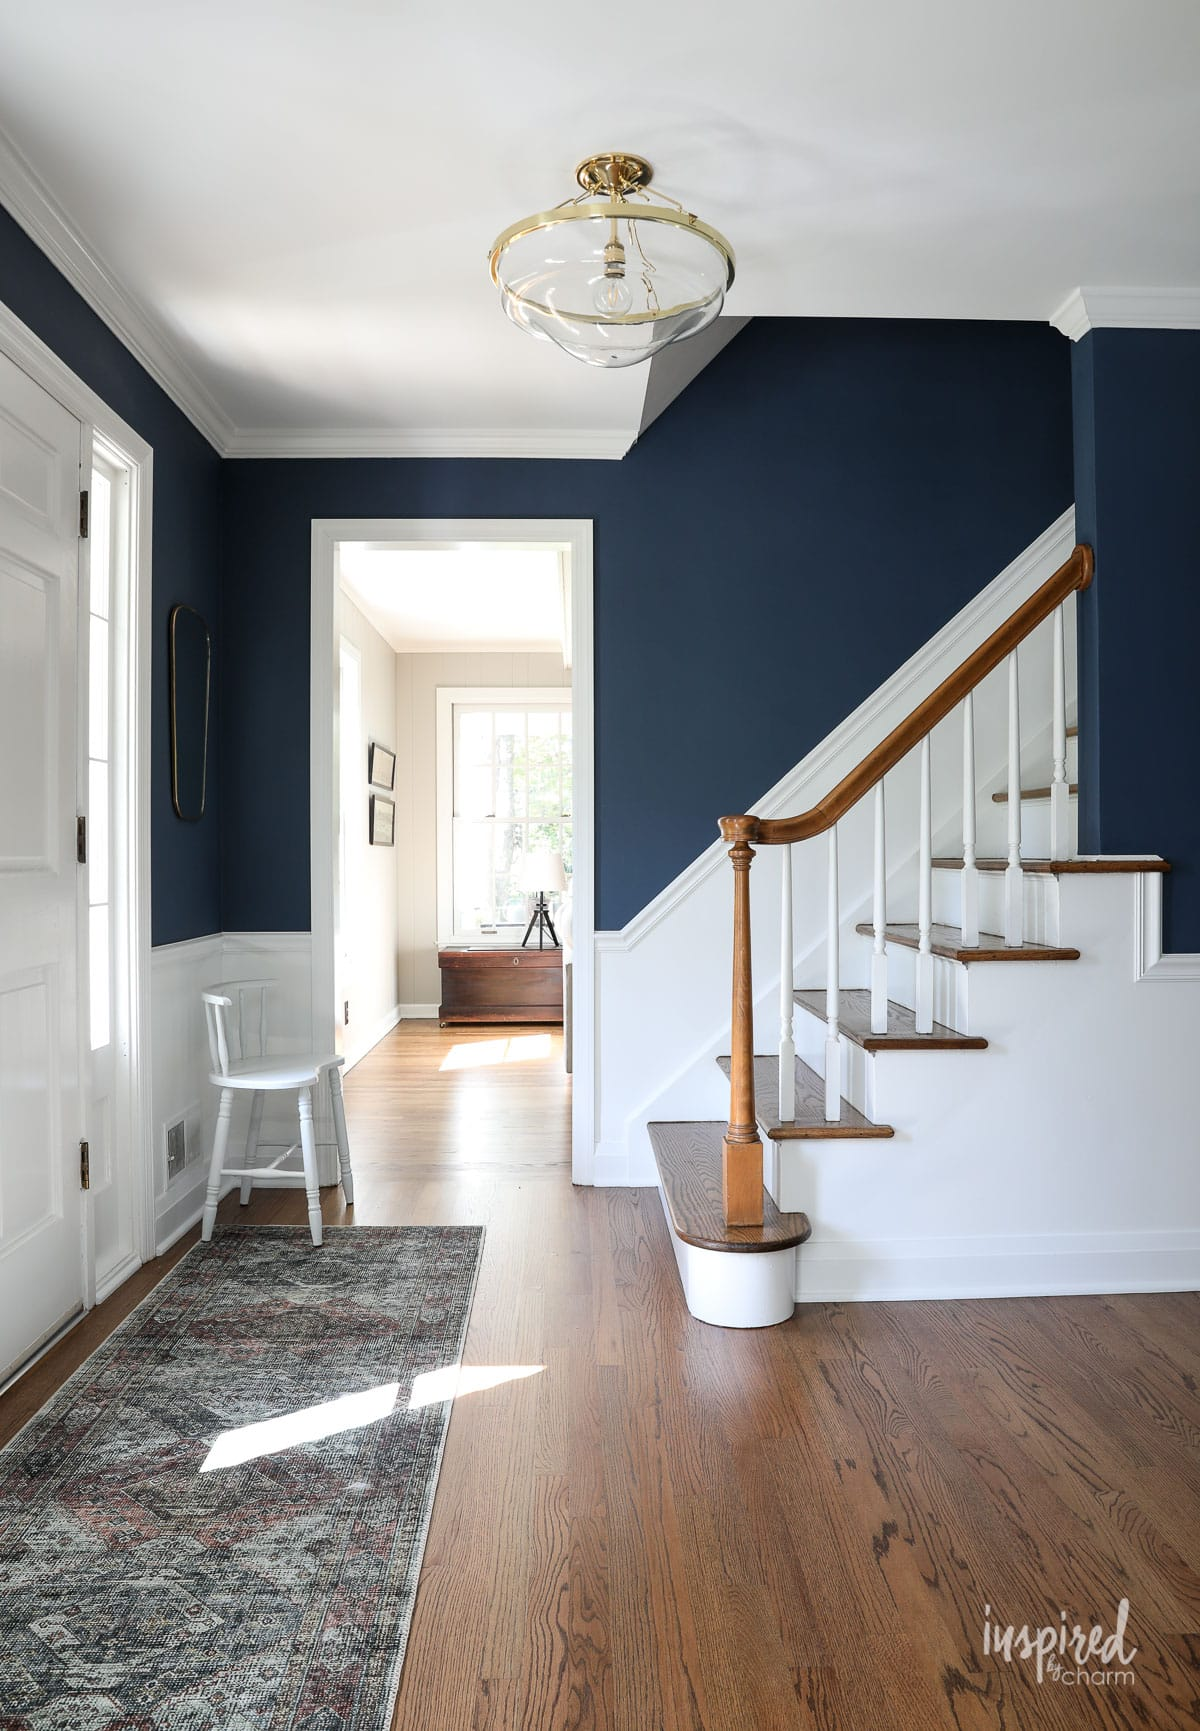 Entryway Update - Ideas for Updating Your Entryway